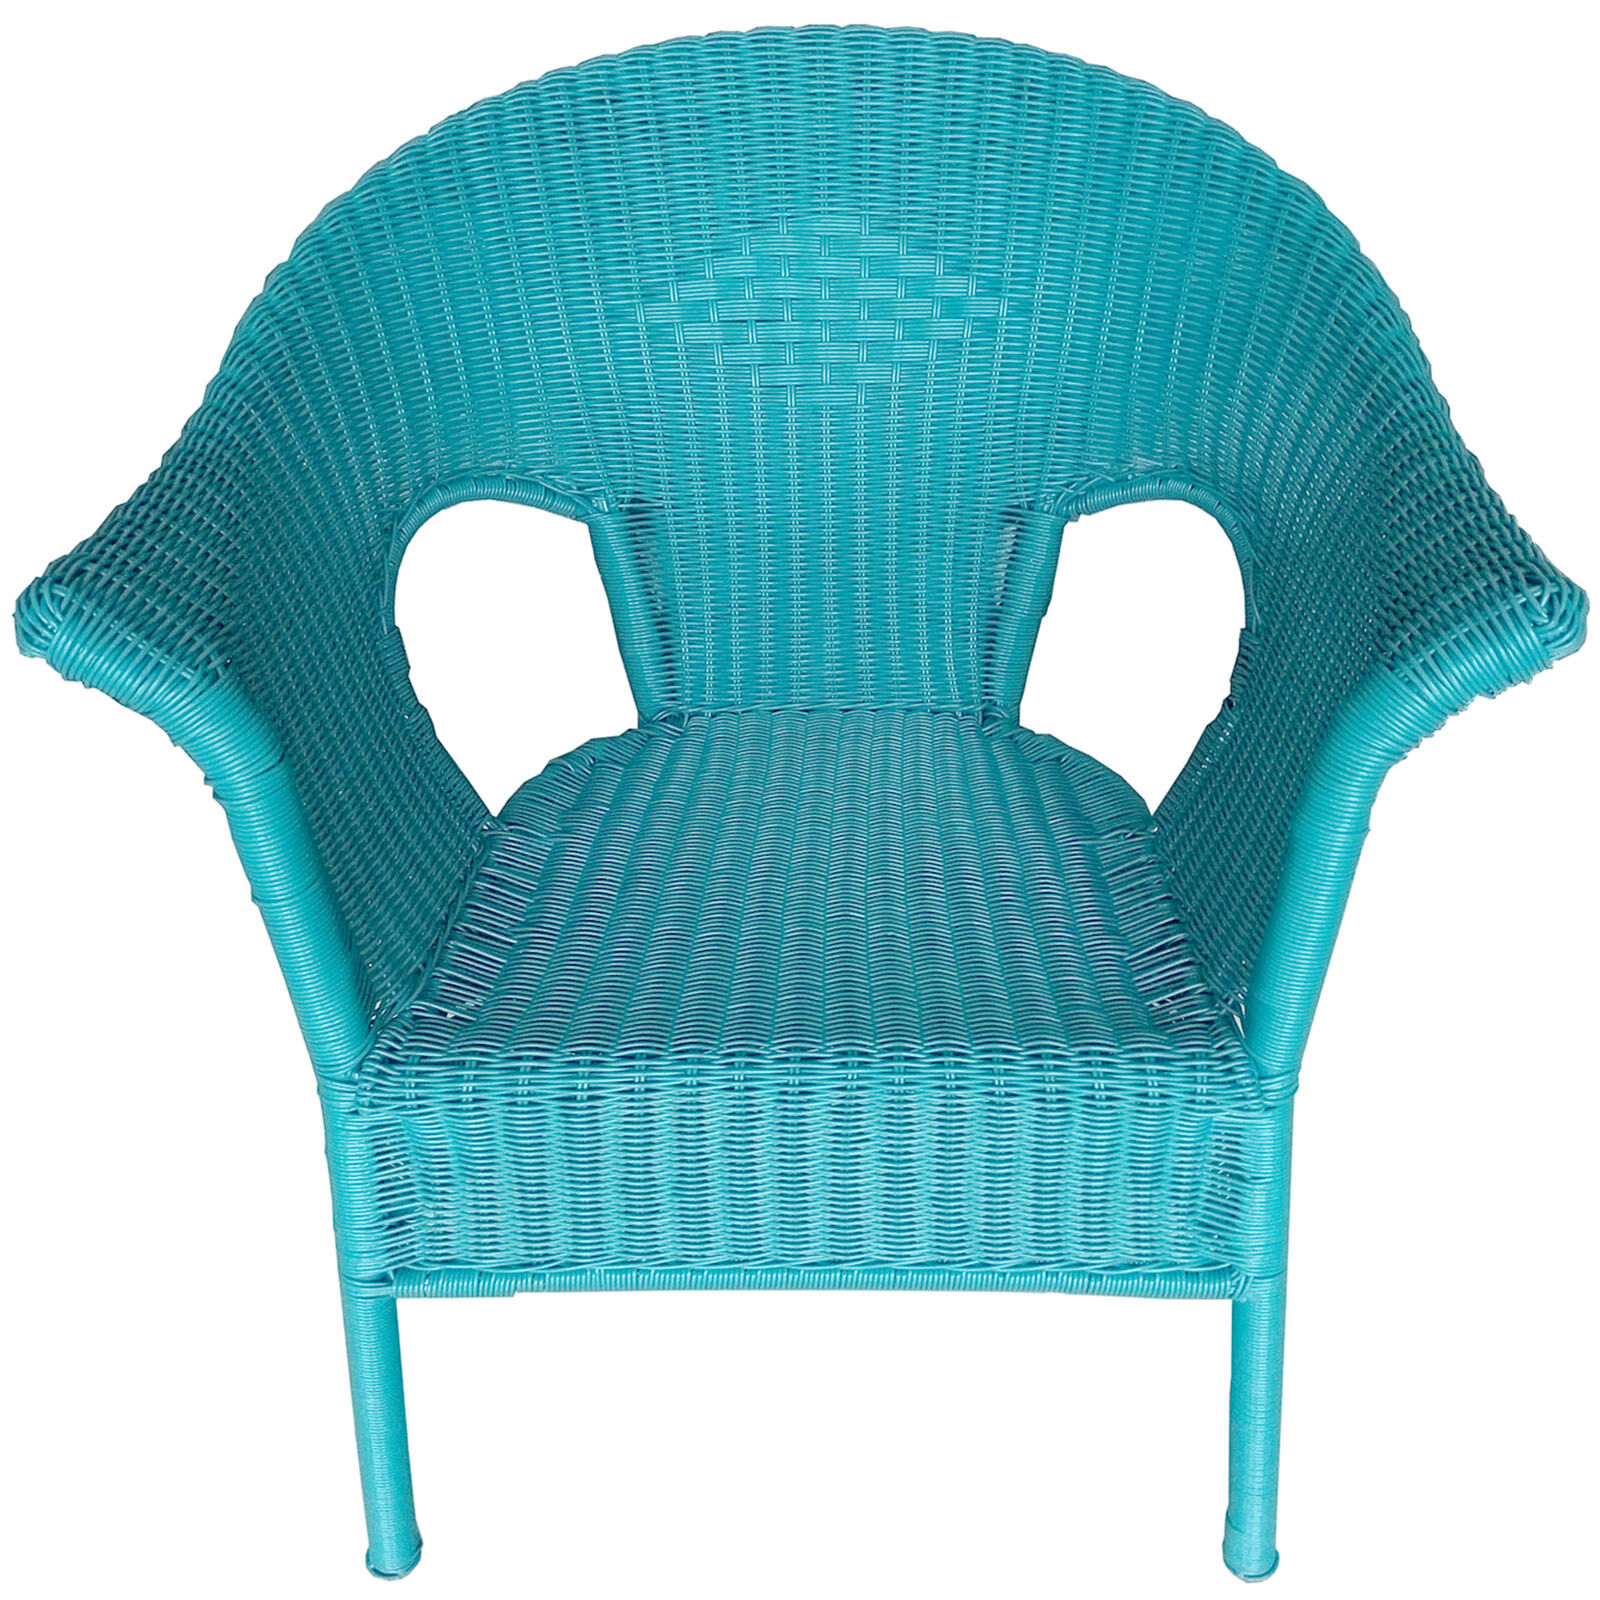 teal colored chairs chair cushion covers with zippers outdoor wicker at home